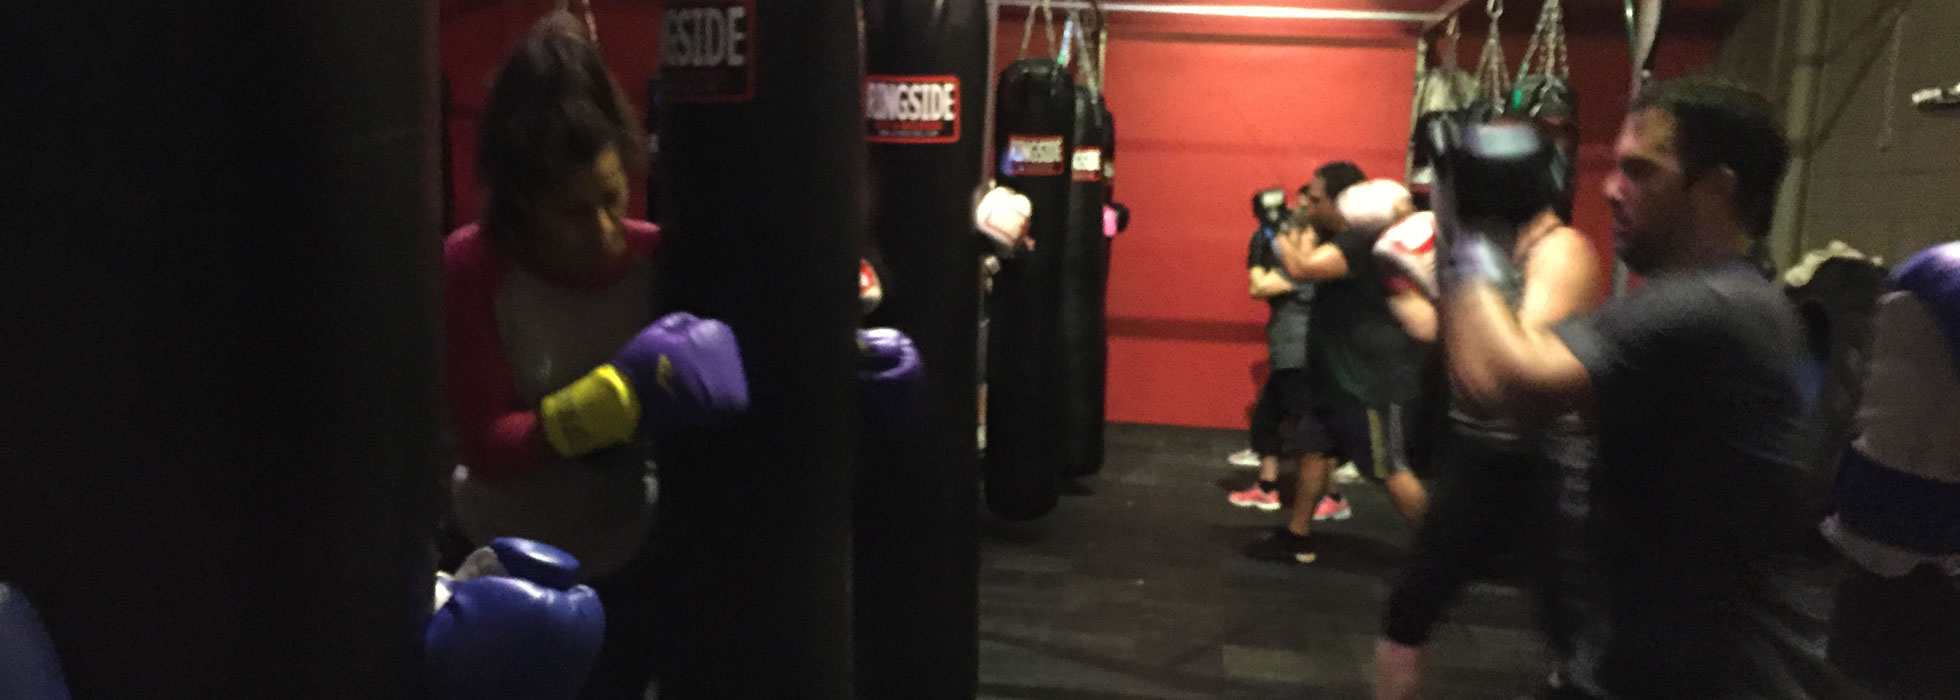 Cardio Kickboxing Group Fitness Classes Near Me In Sterling Heights, MI